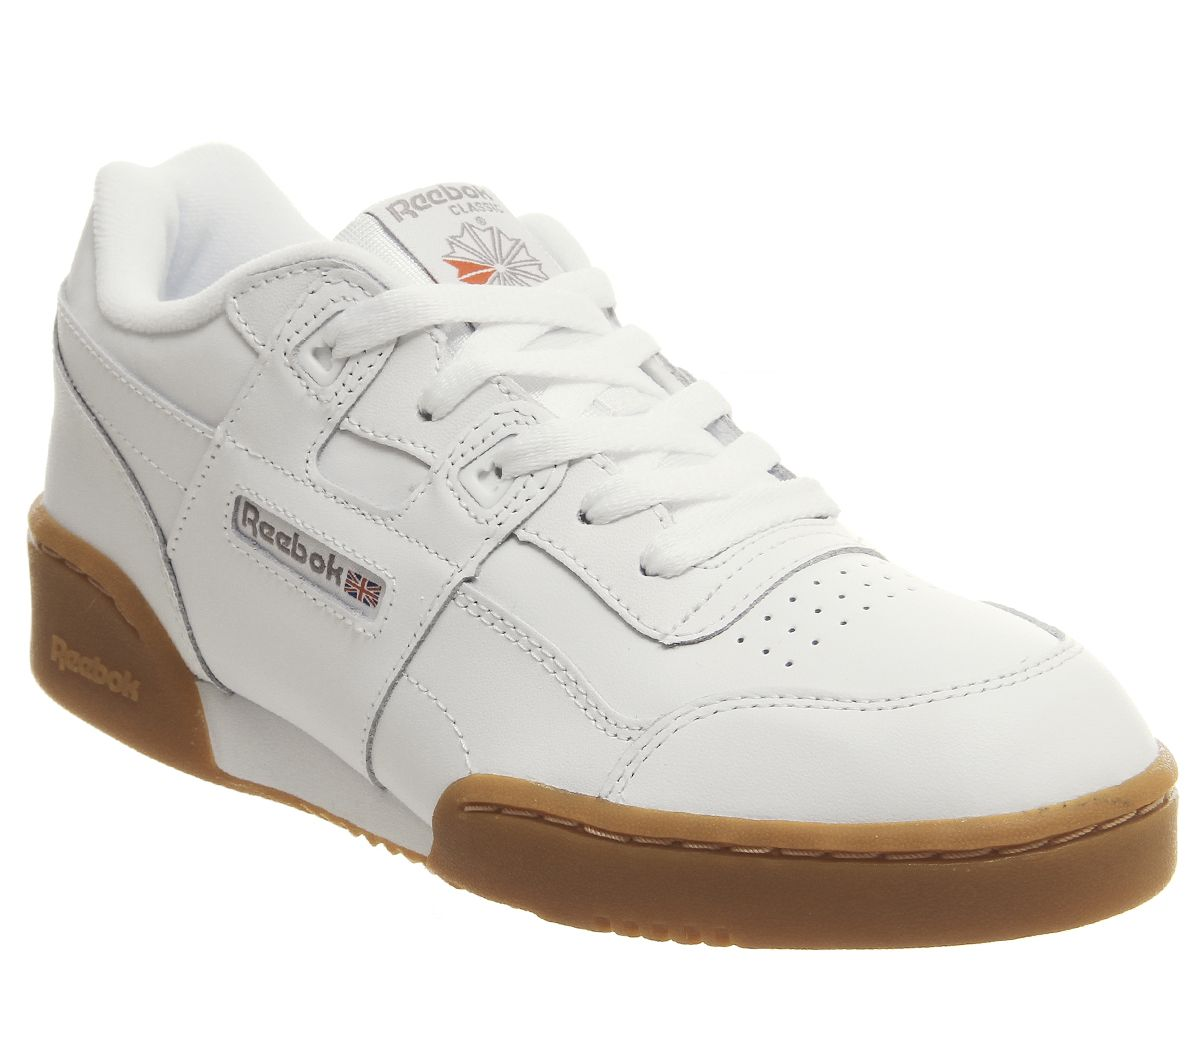 a0149f9b88cd Reebok Workout Gs Trainers White Gum - Hers trainers